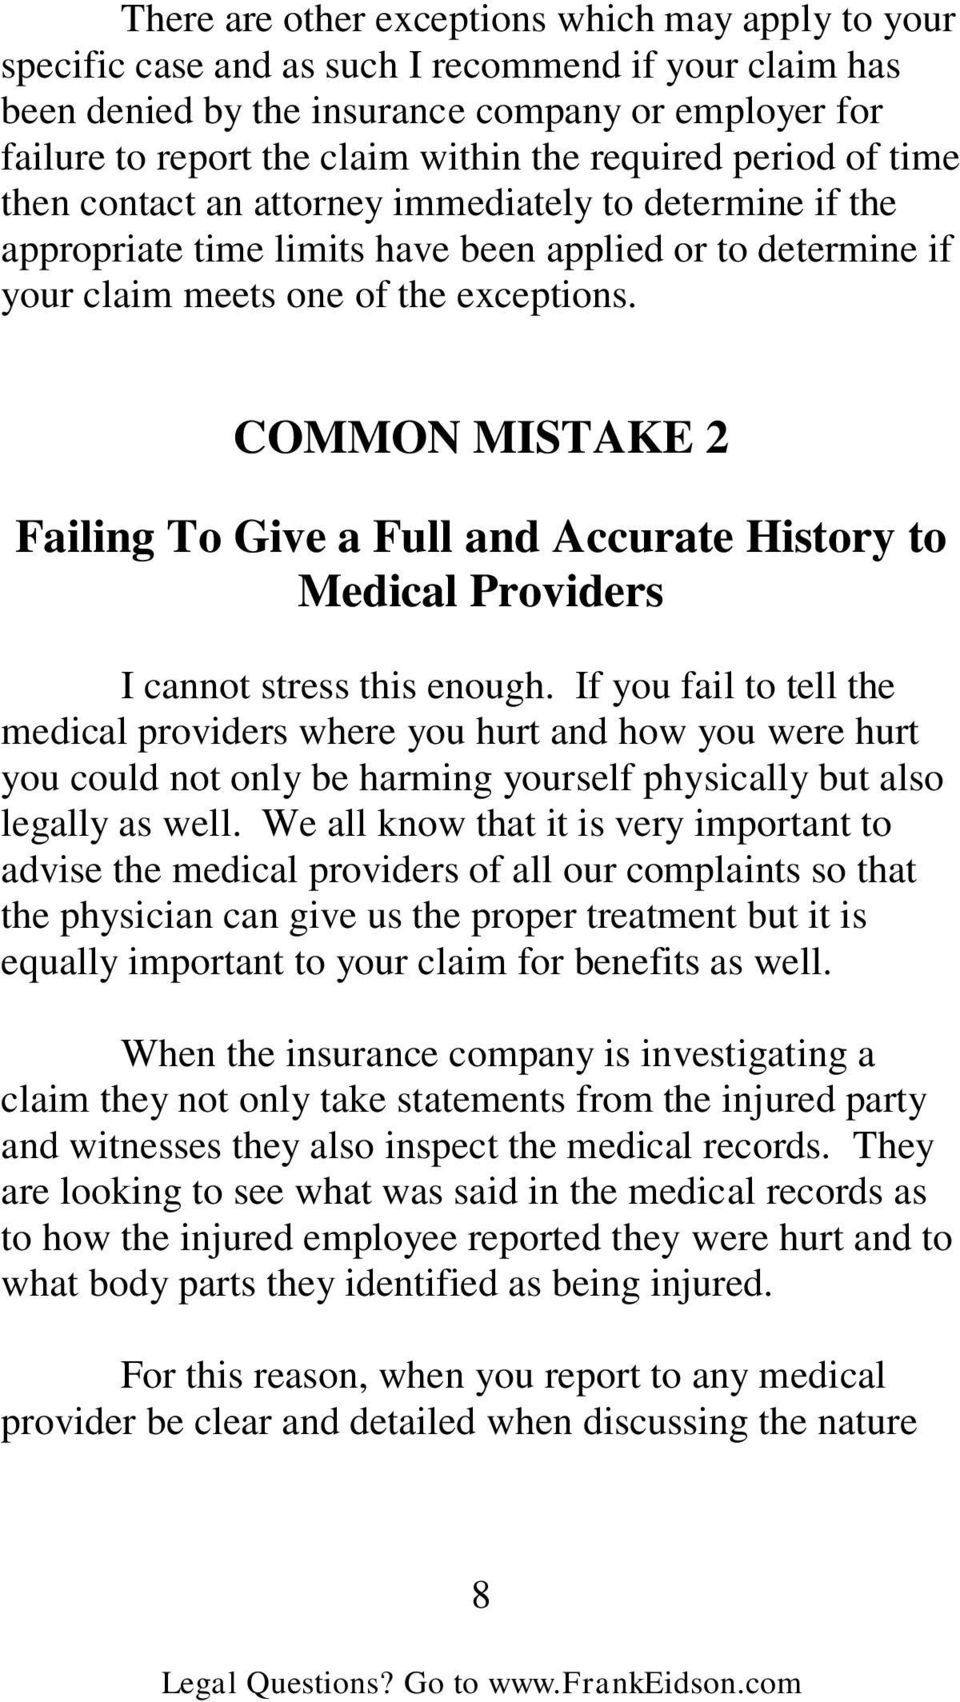 COMMON MISTAKE 2 Failing To Give a Full and Accurate History to Medical Providers I cannot stress this enough.